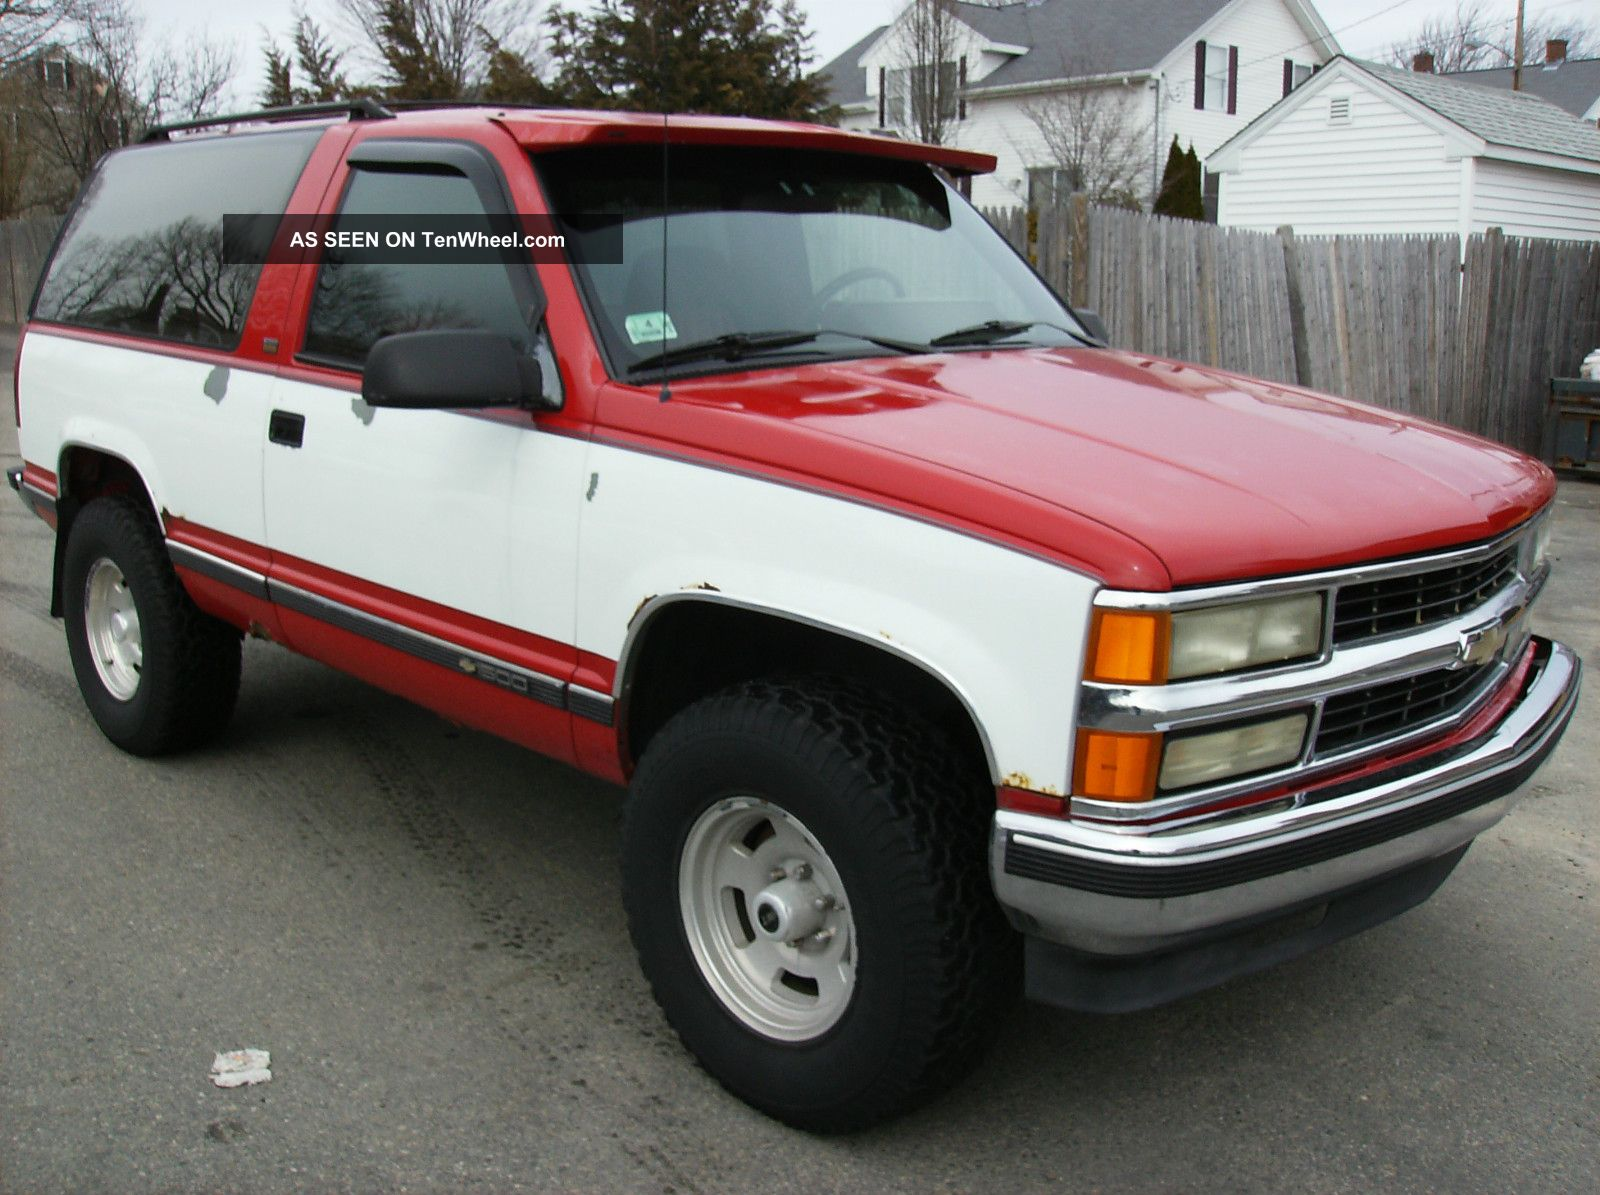 1994 chevrolet blazer silverado sport sport utility 2 door 5 7l. Black Bedroom Furniture Sets. Home Design Ideas